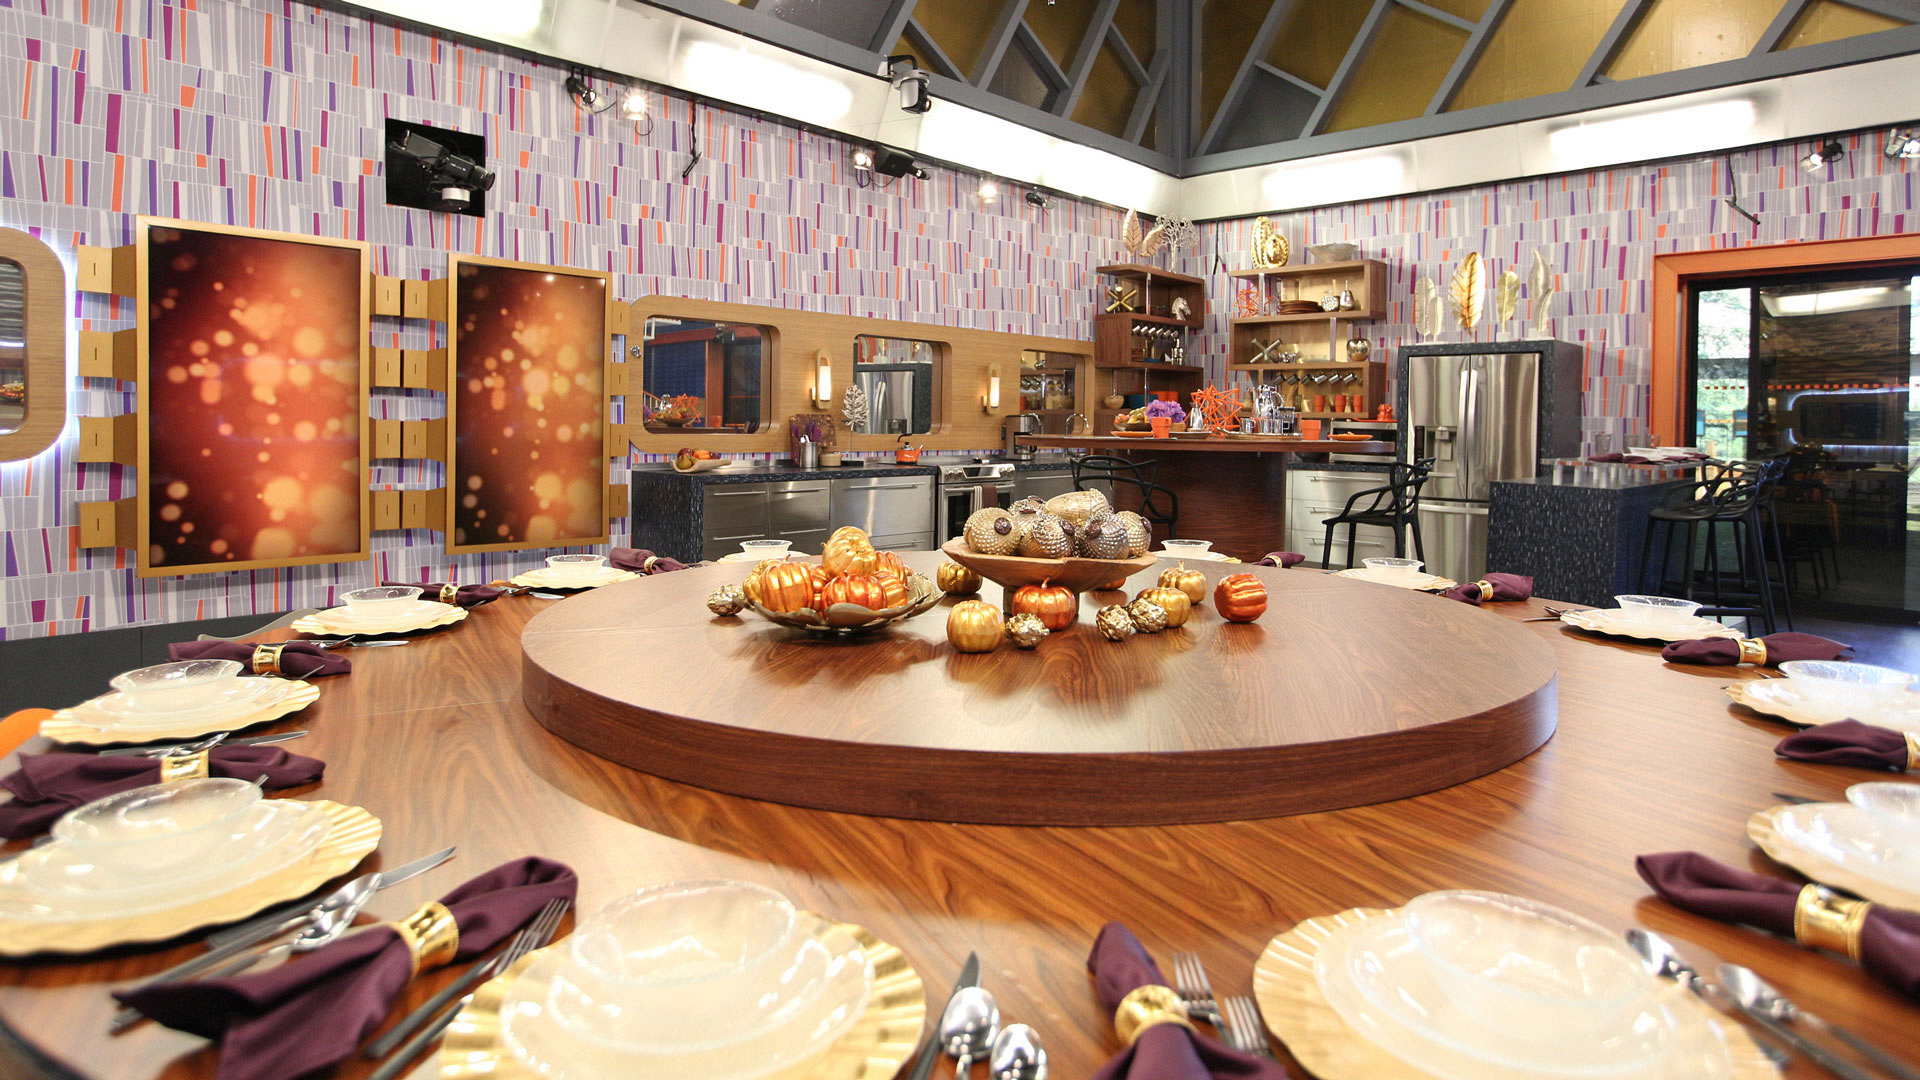 The Houseguests are sure to break bread around this gorgeous spread.